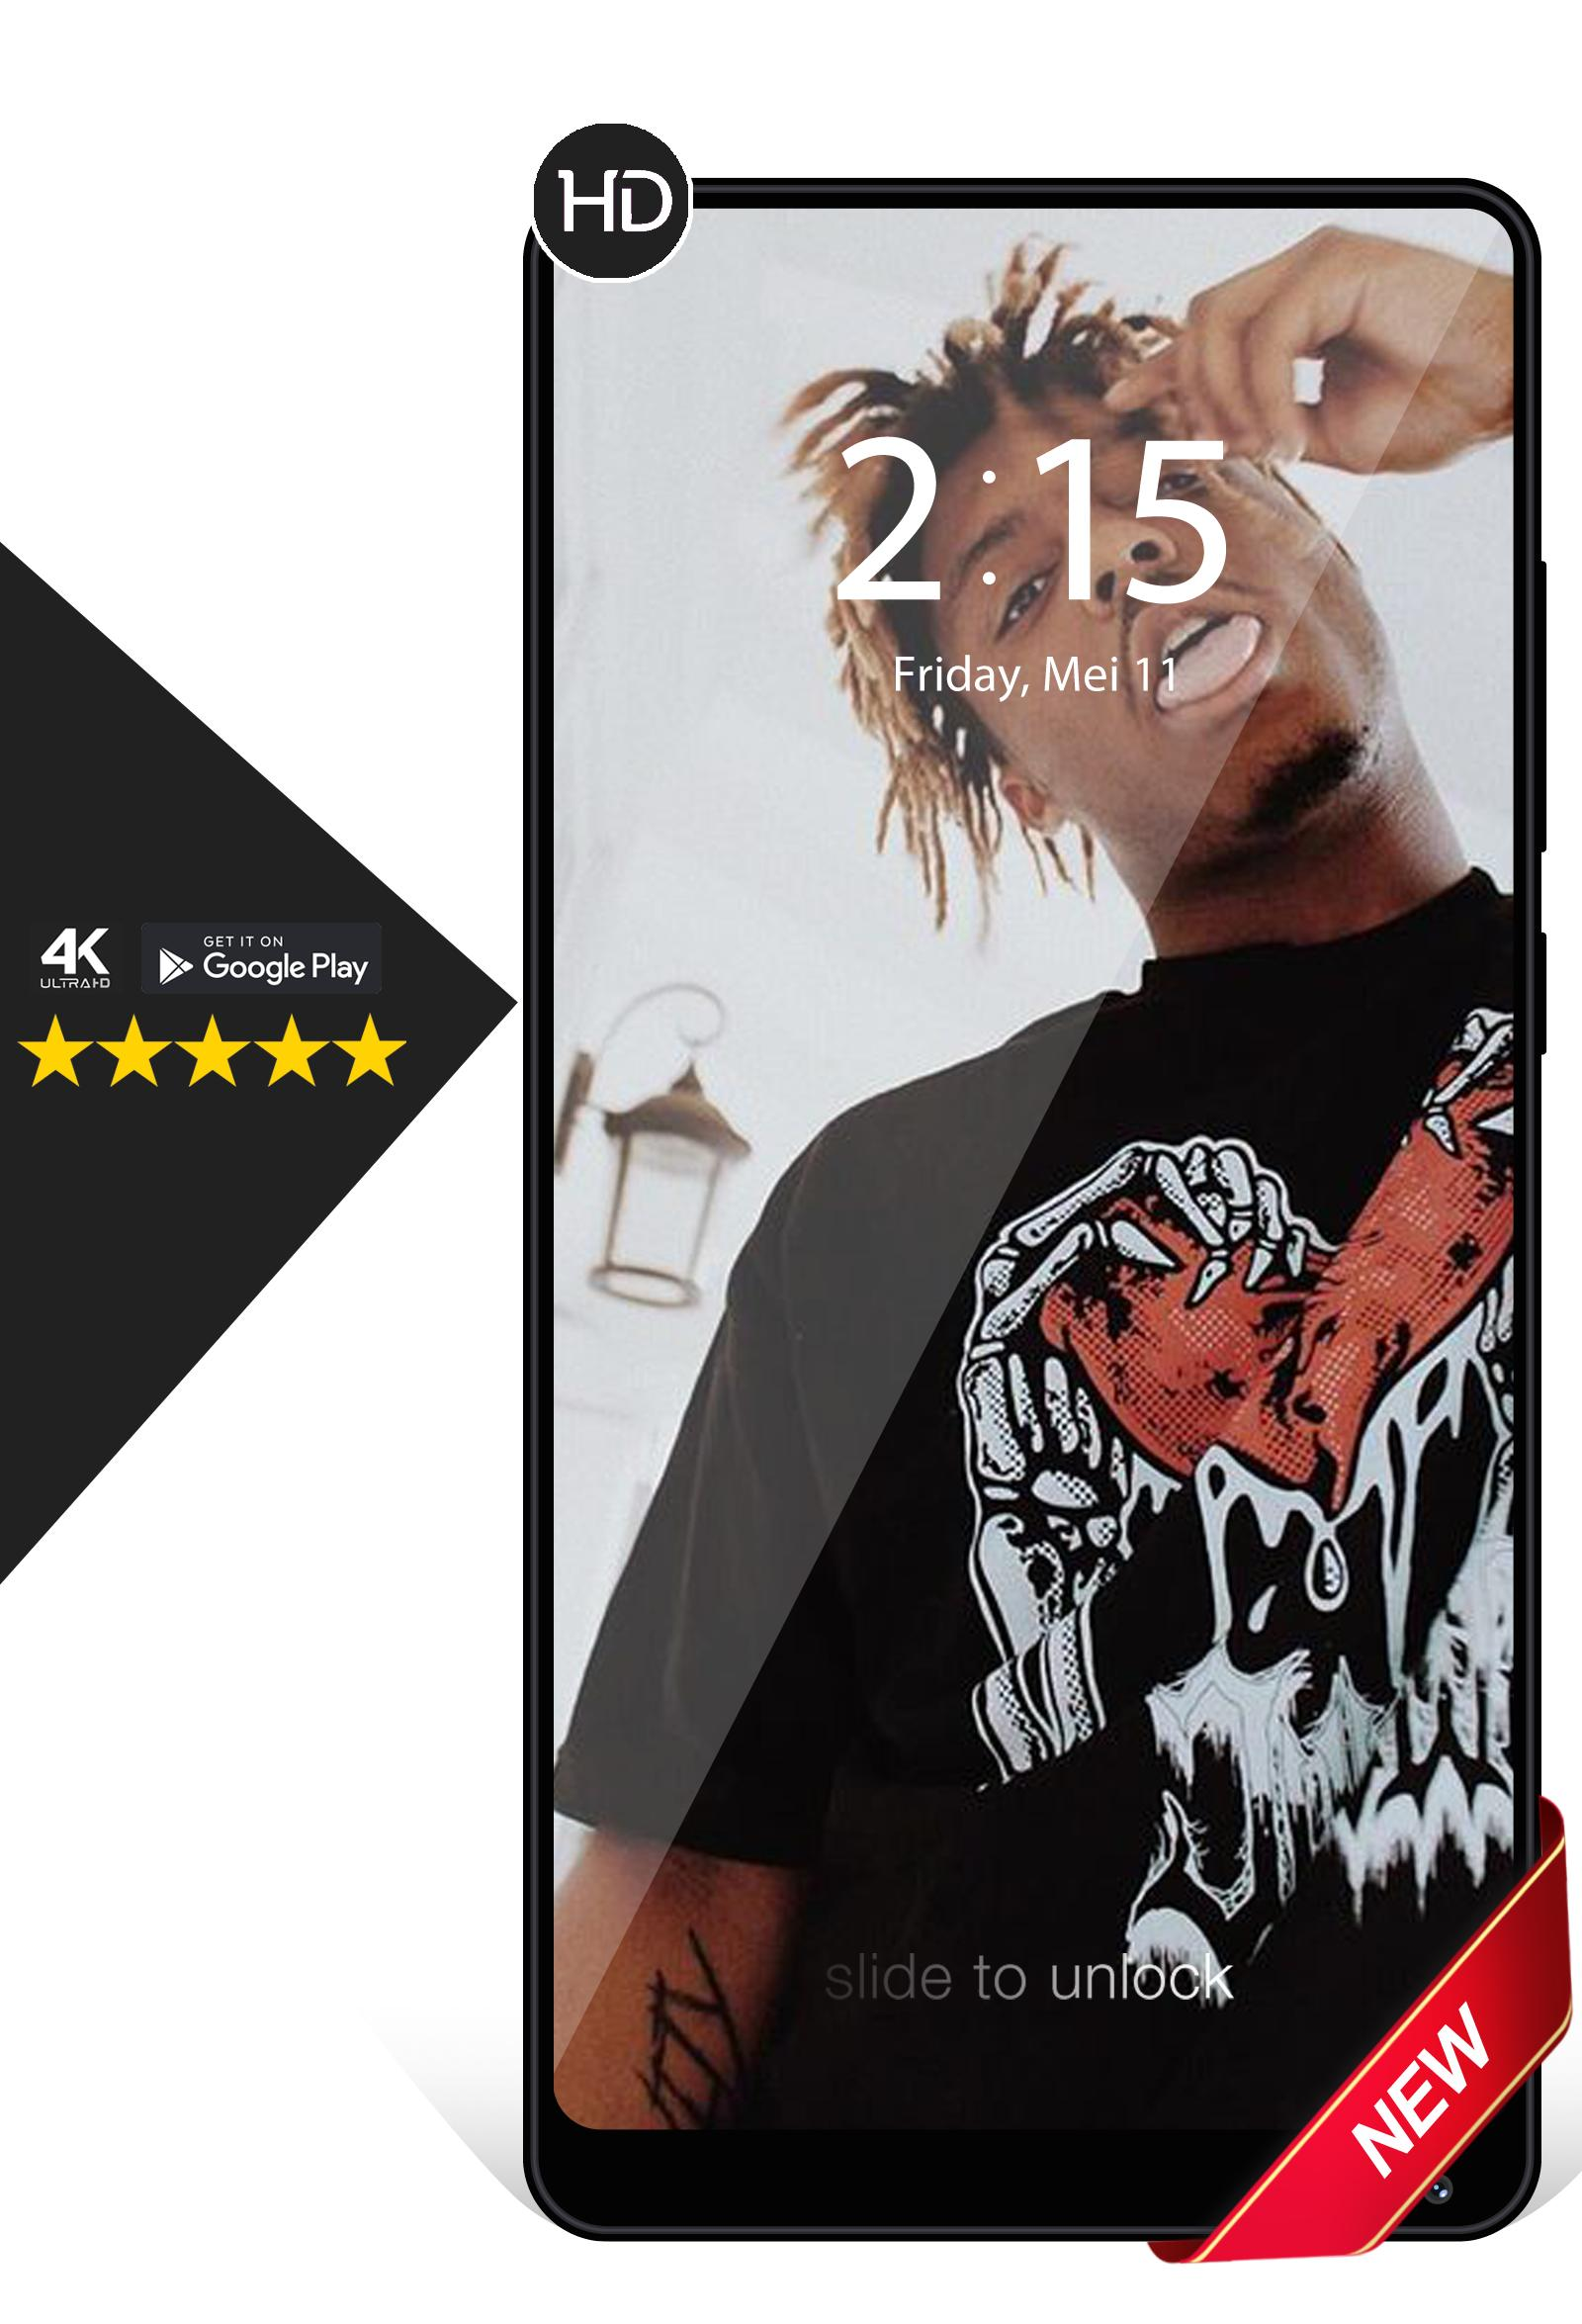 Juice Wrld Wallpapers Hd For Android Apk Download